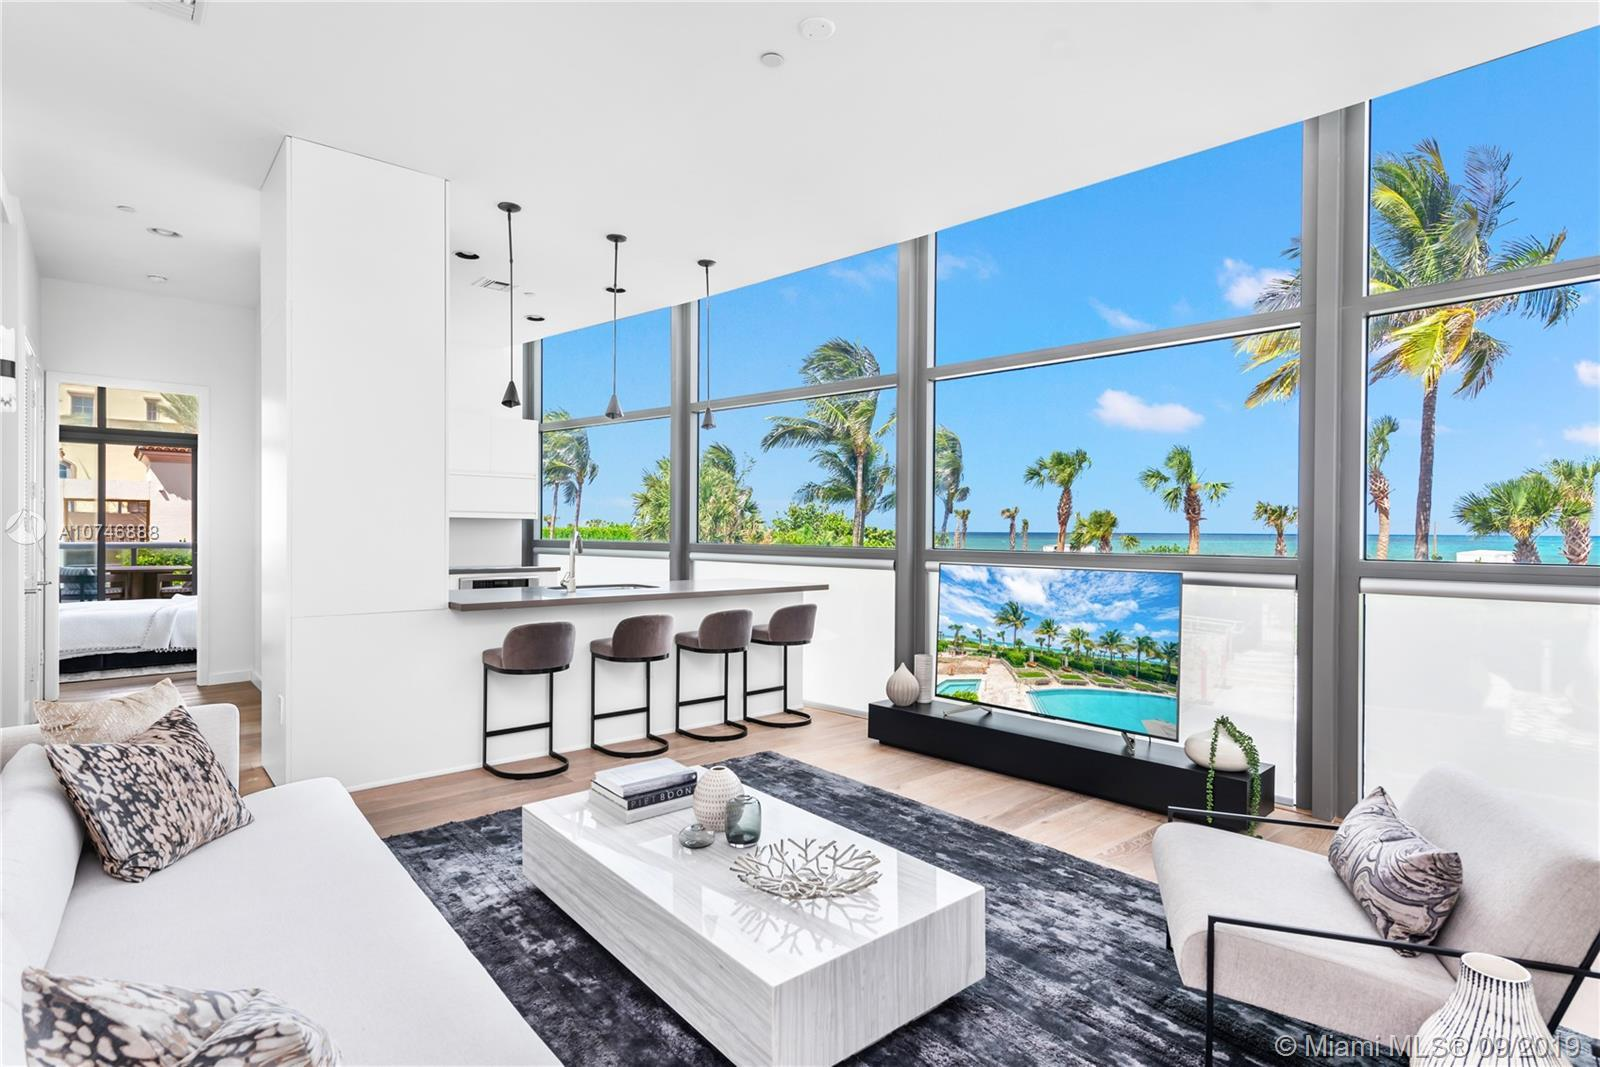 Residence has floor-to-ceiling windows with direct Atlantic Ocean views and super high ceilings. Bra